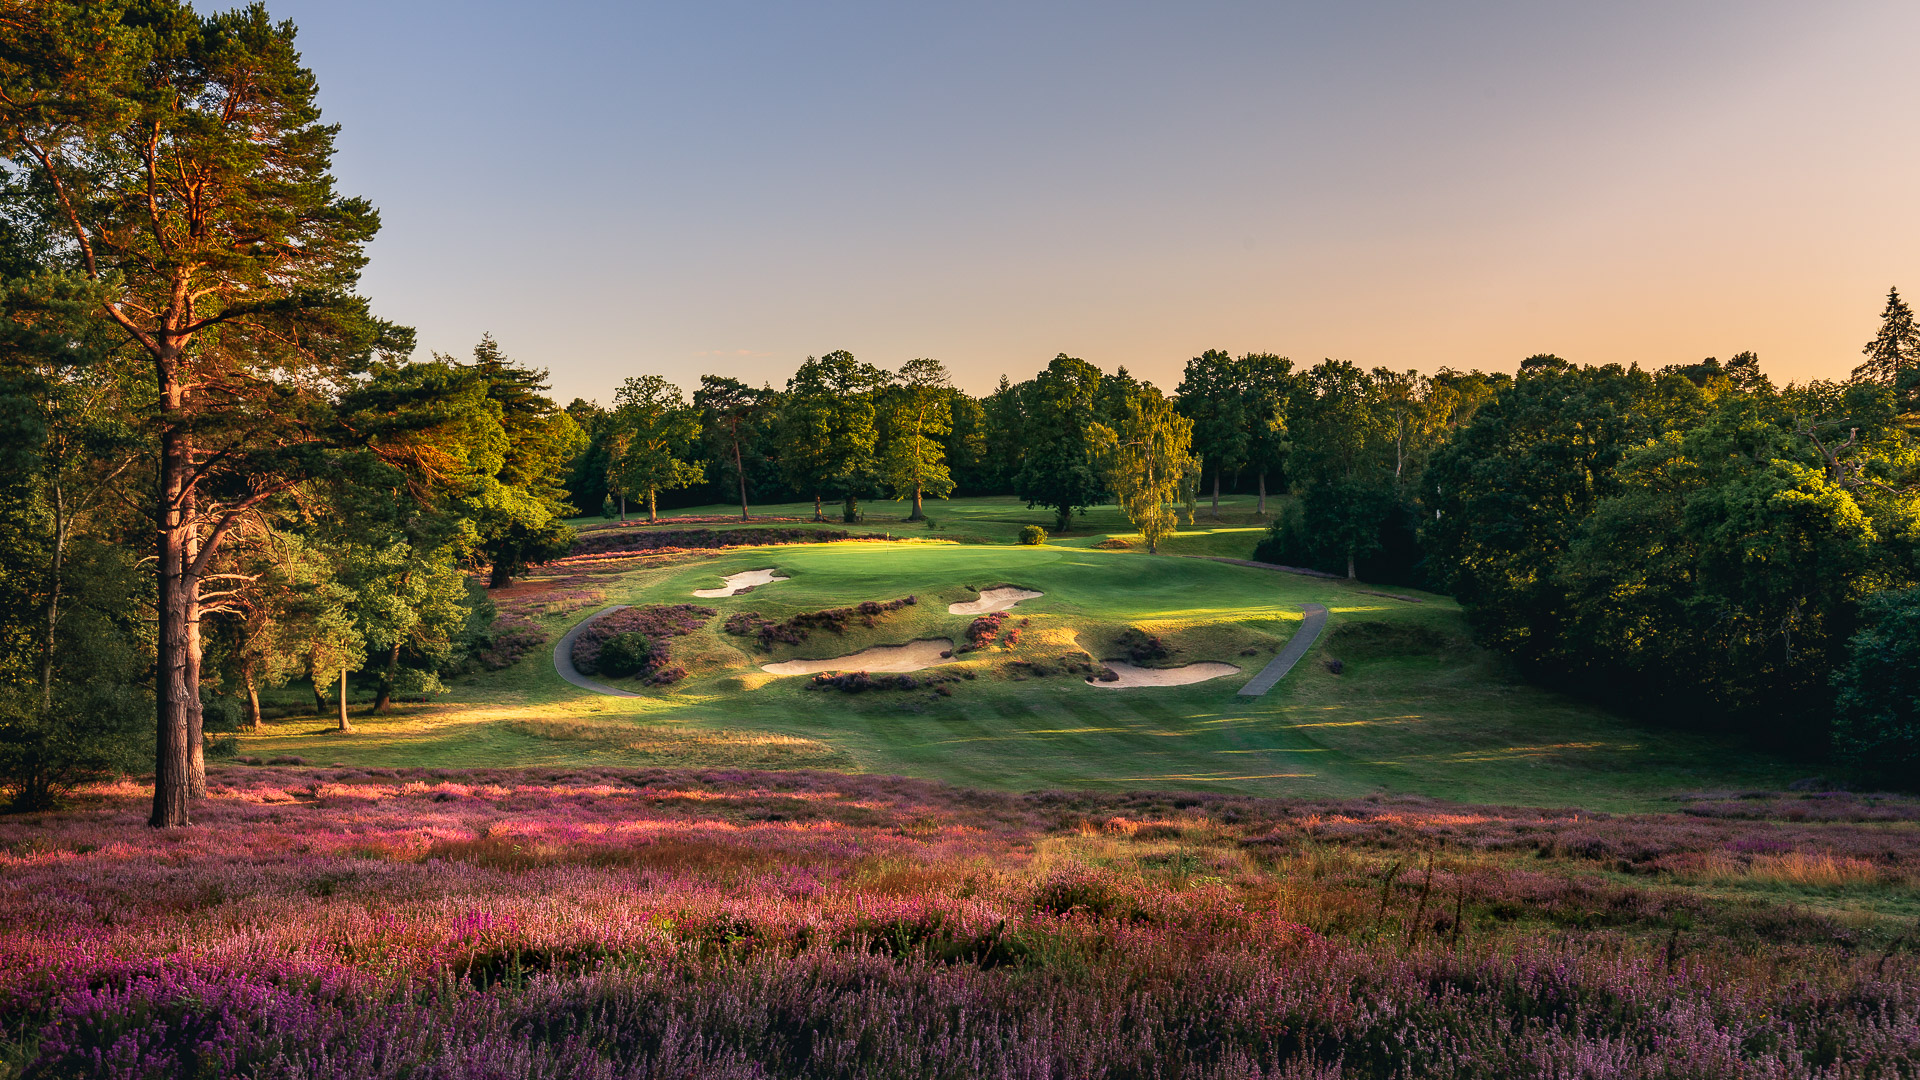 08th-Hole-St-Georges-Hill-Golf-Club-2439-Edit-3